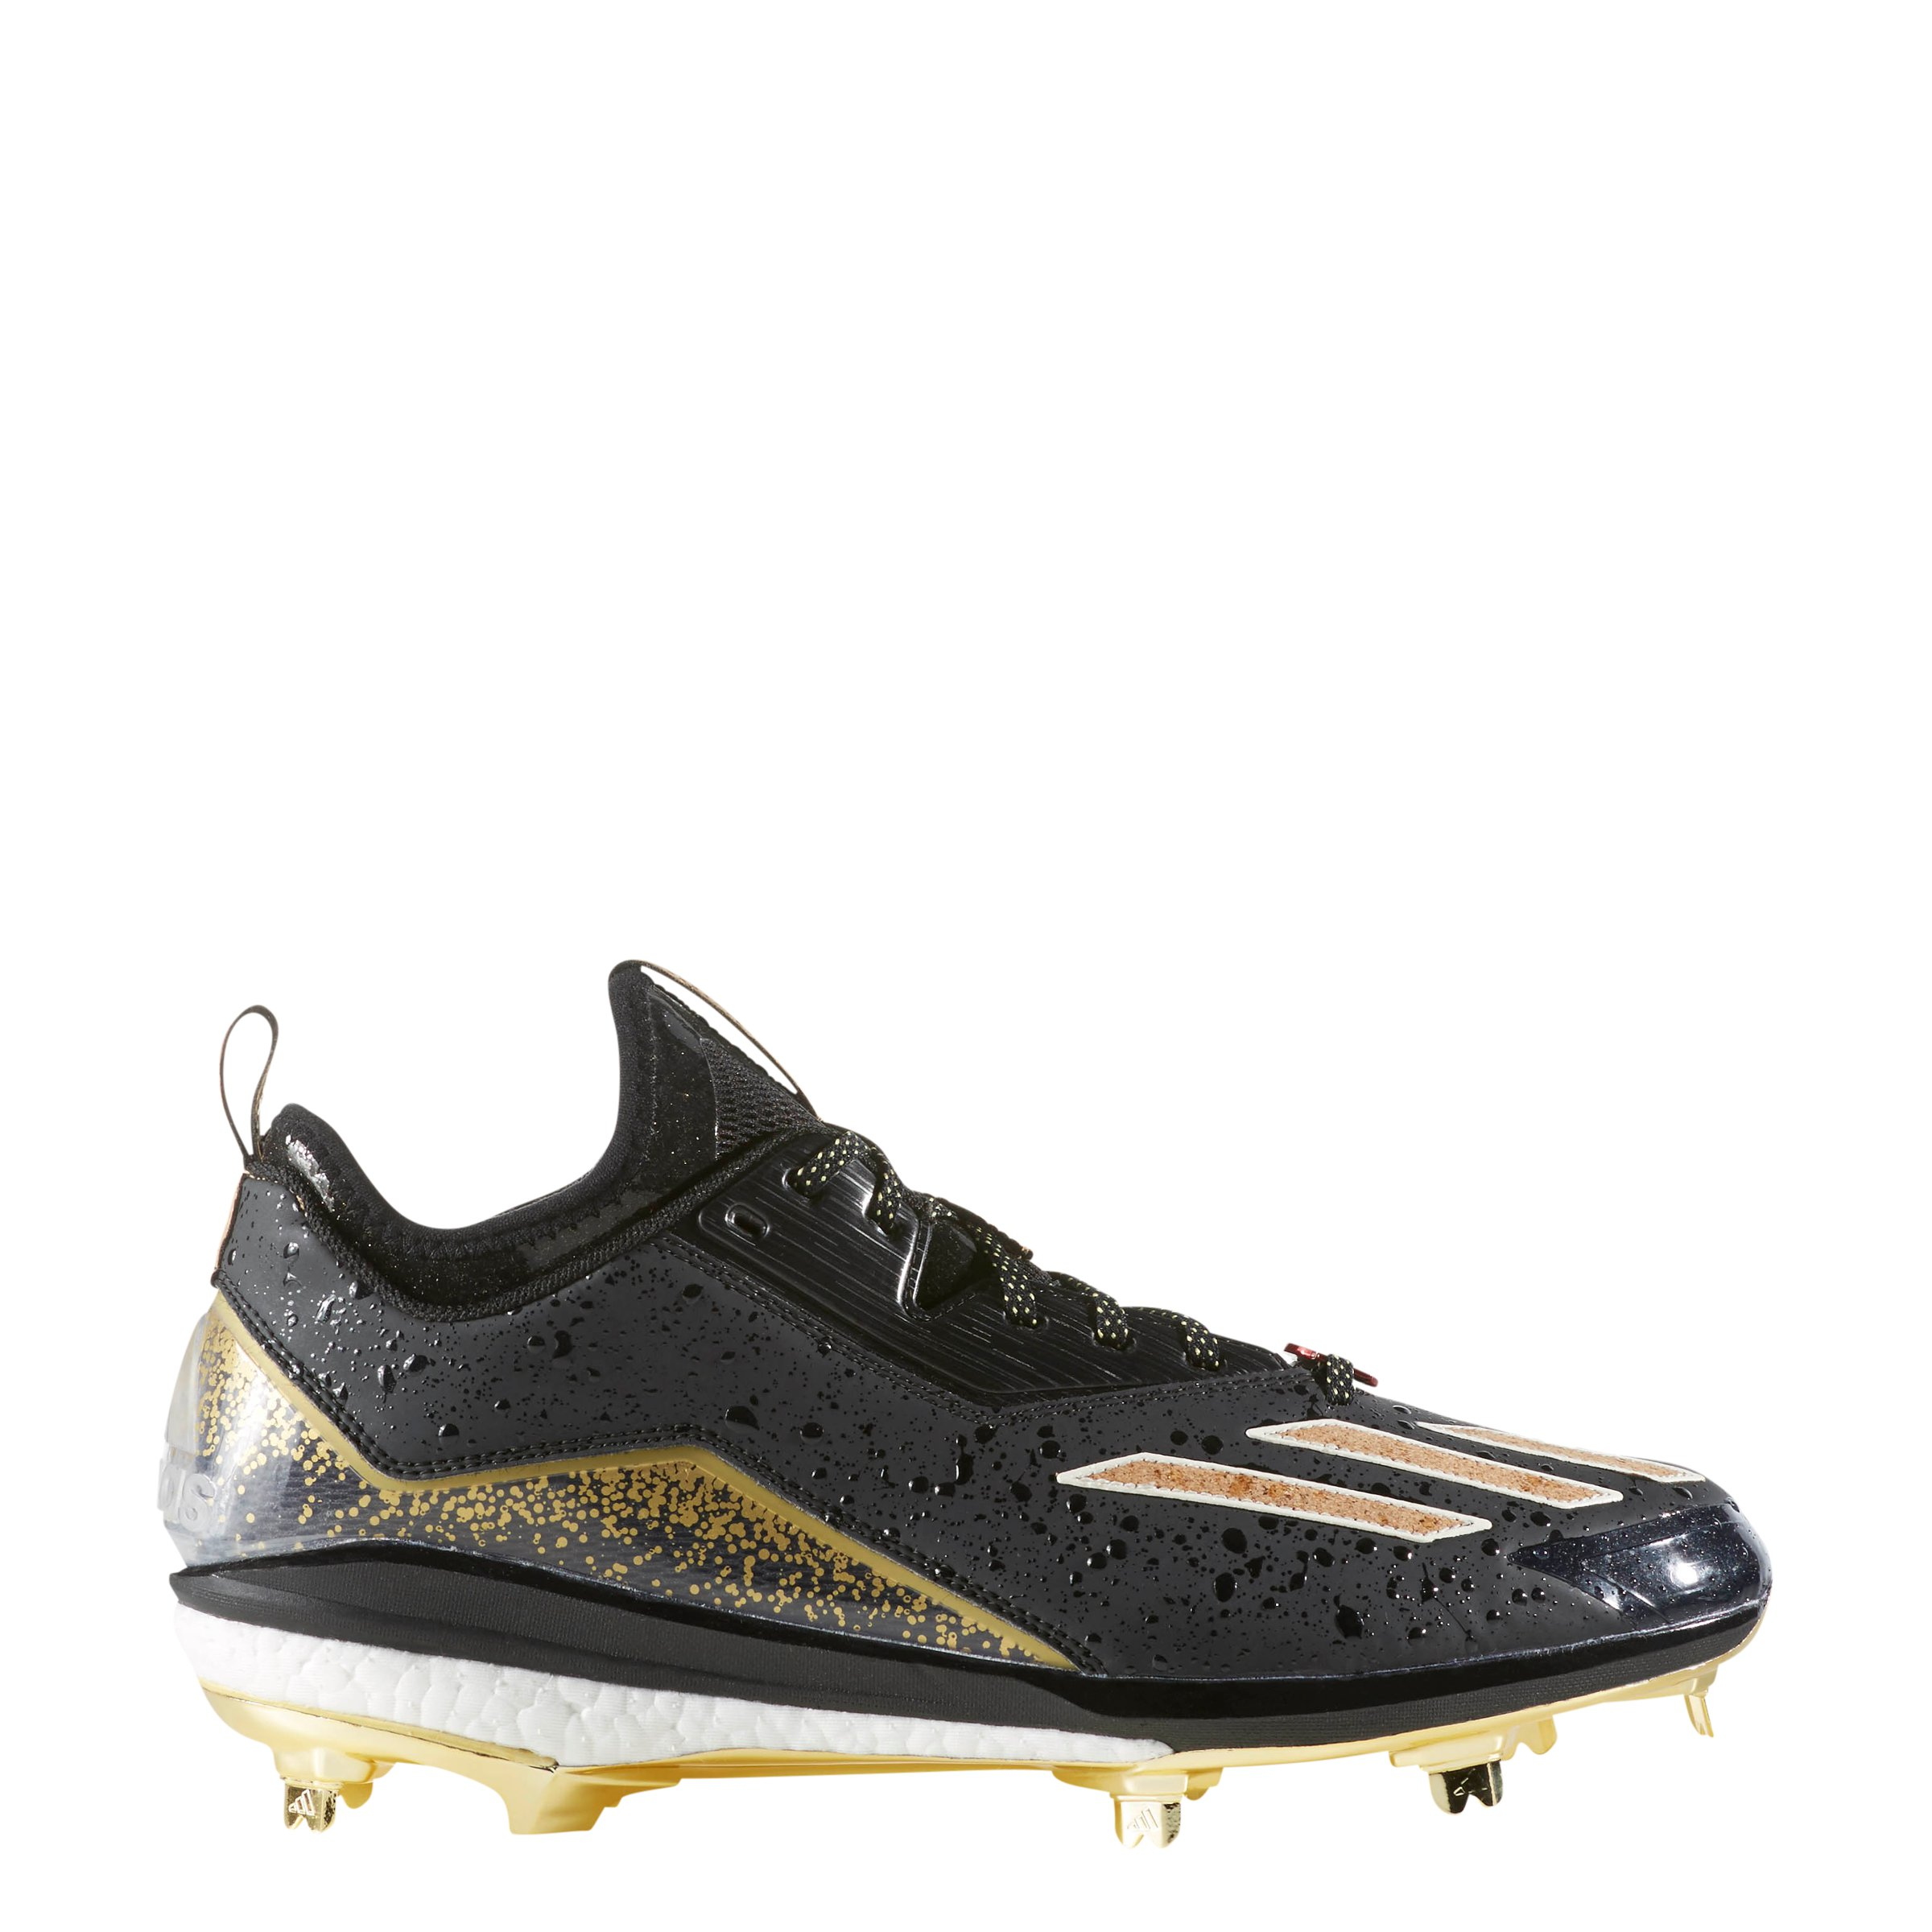 adidas boost icon cleats